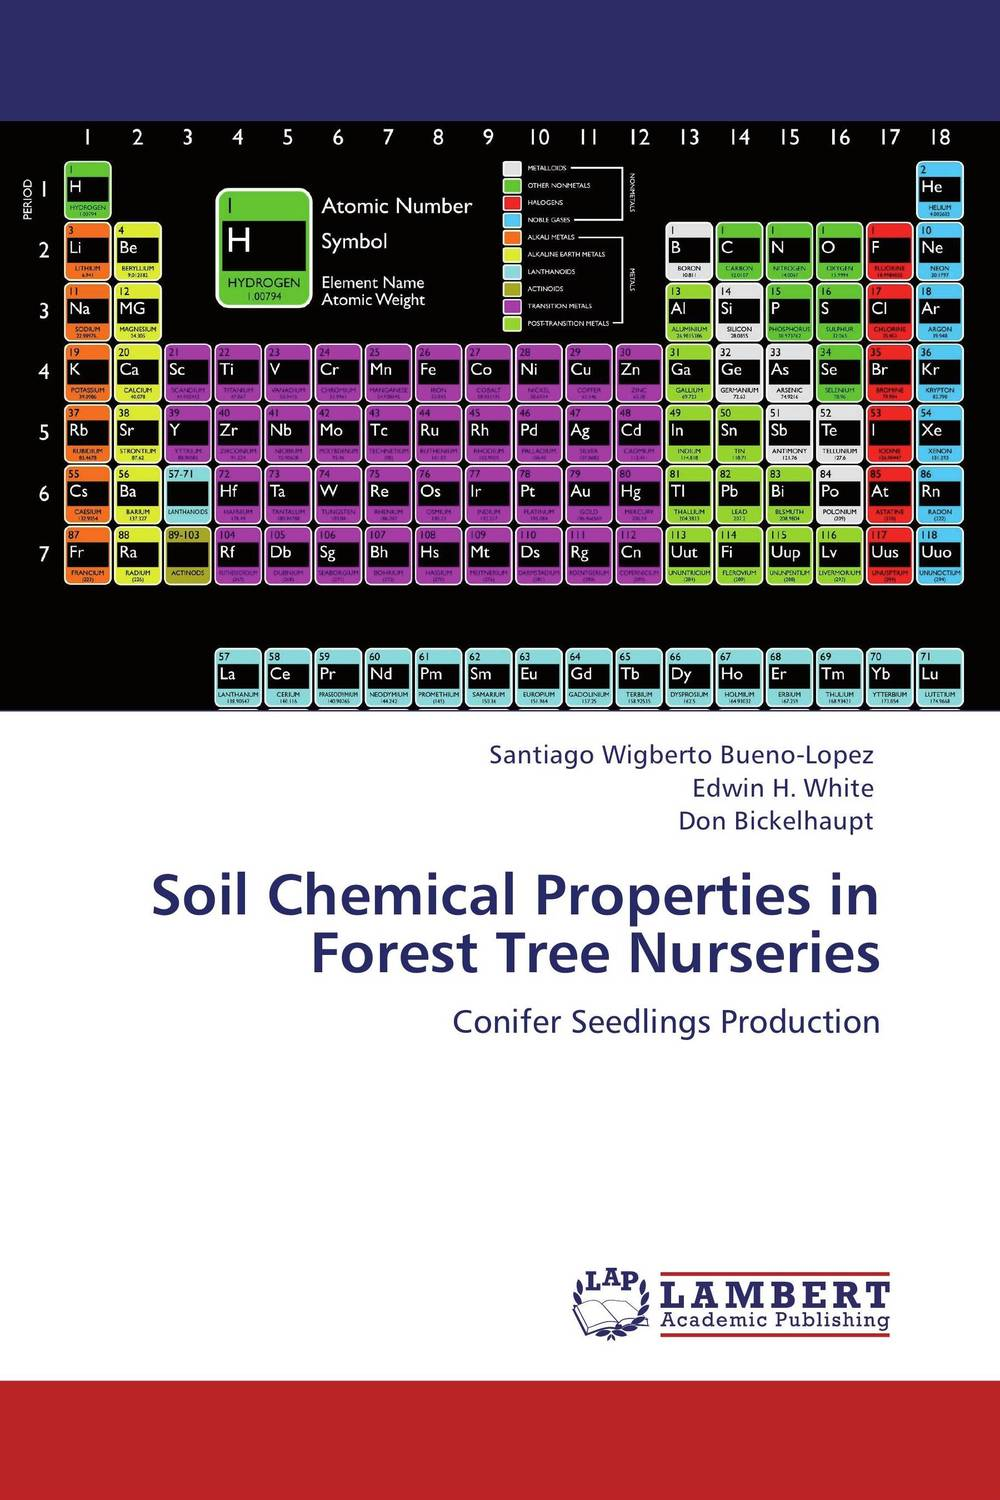 Soil Chemical Properties in Forest Tree Nurseries parnas bibliotheca microbiologica brucella phages properties and application